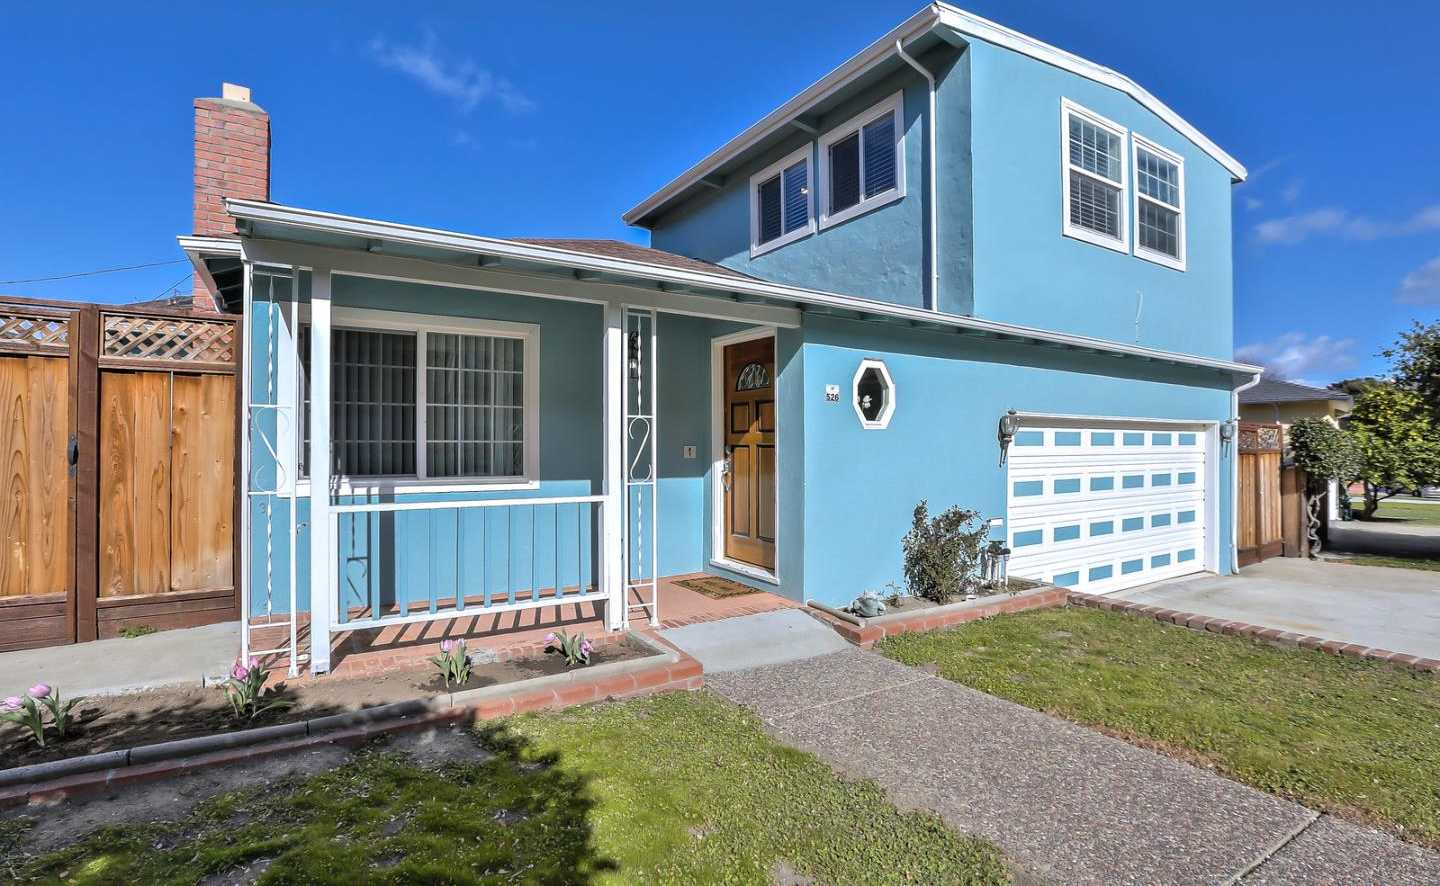 millbrae mature singles This single-family home is located at 363 paramount drive, millbrae, ca 363 paramount dr is in the 94030 zip code in millbrae, ca 363 paramount dr has 3 beds, 2 baths, approximately 1,550 square feet, and was built in 1947.